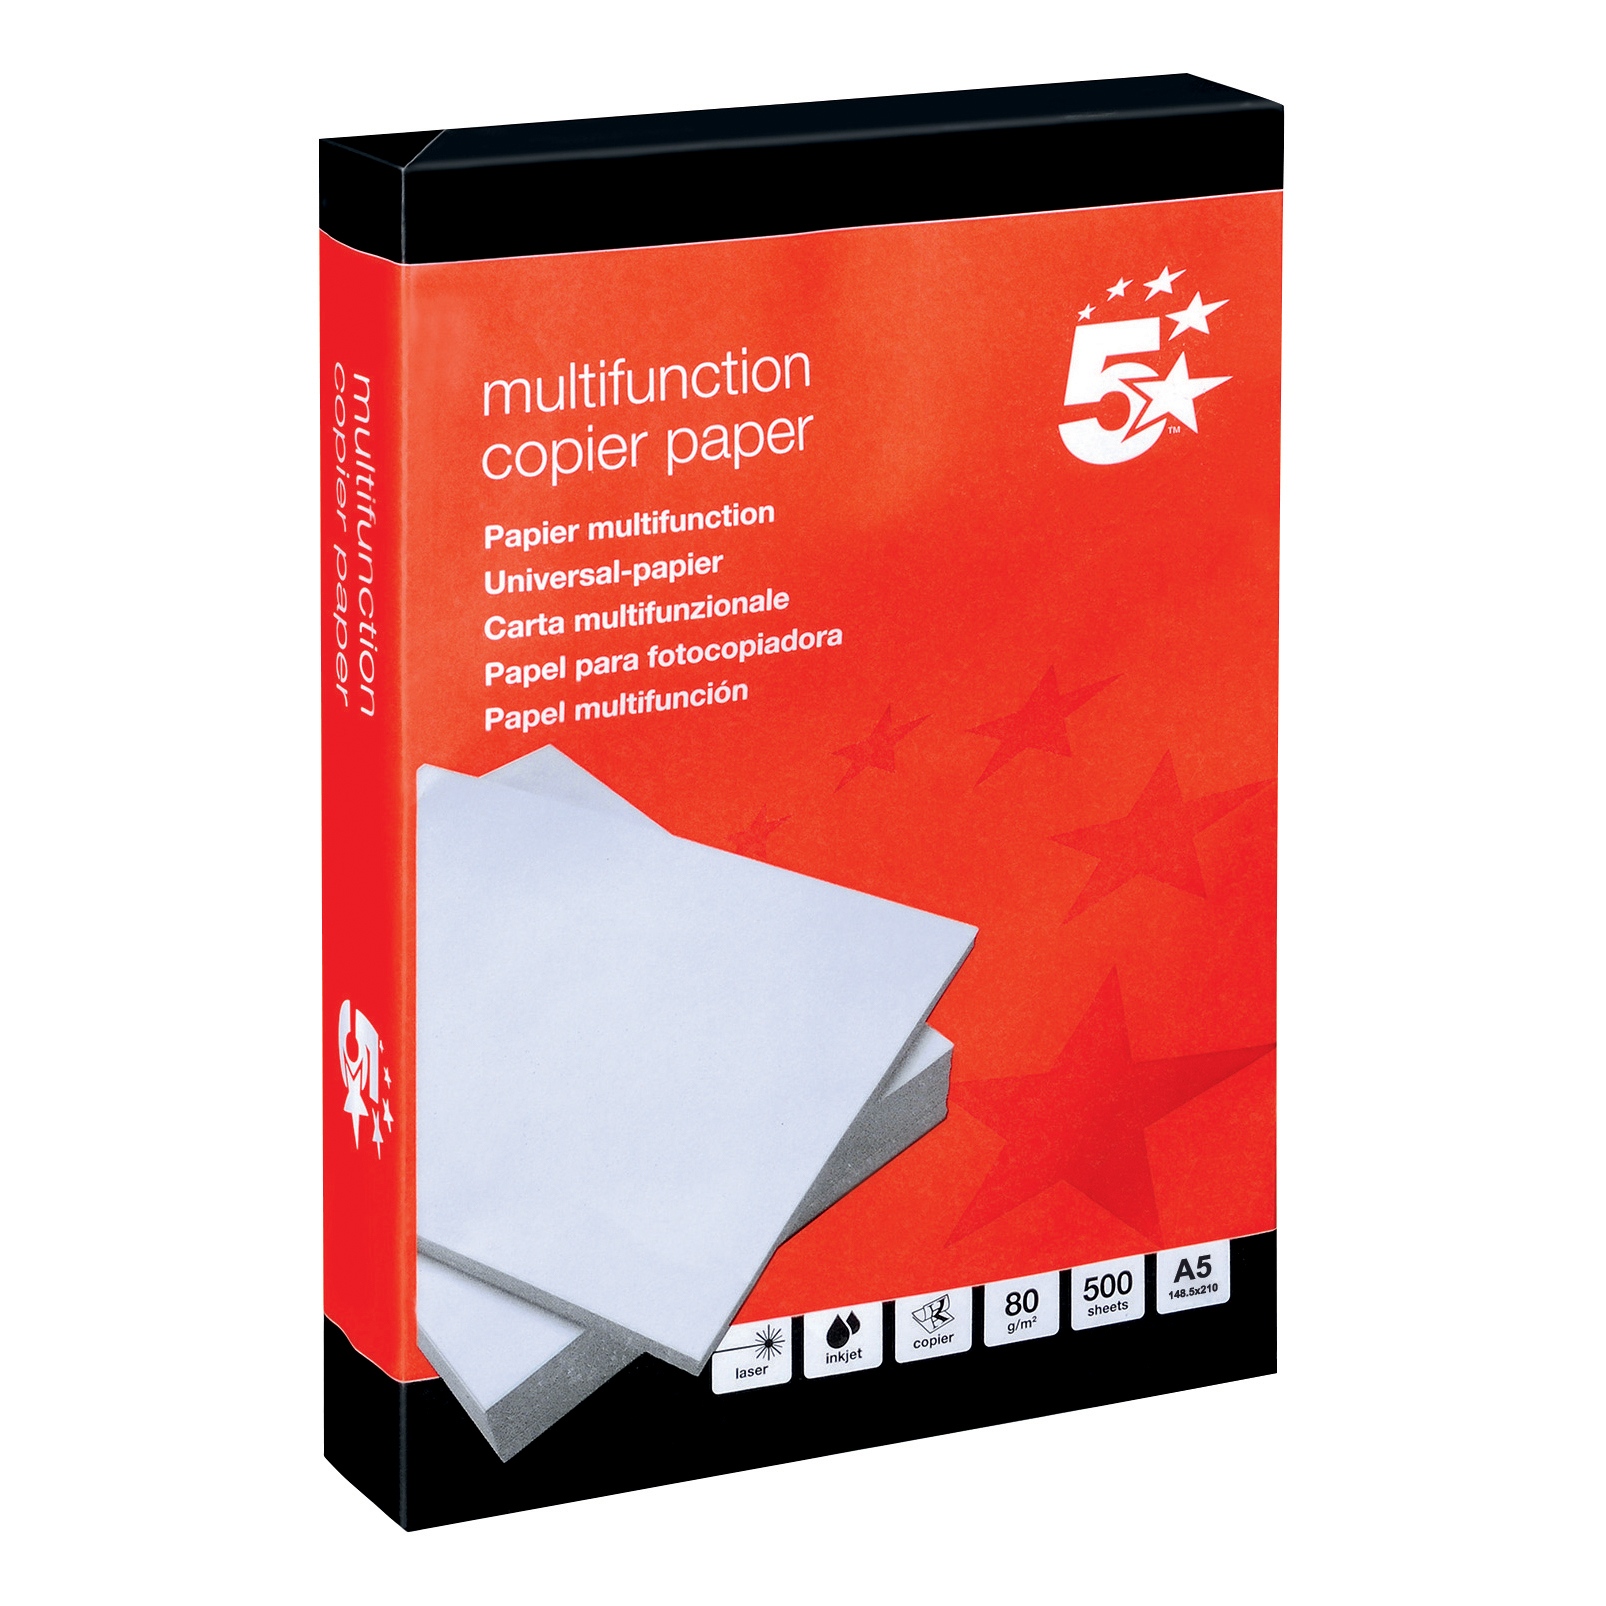 Printer (Laser, Inkjet, Copier) 5 Star Office Copier Paper Multifunctional Ream-Wrapped 80gsm A5 White [500 Sheets]